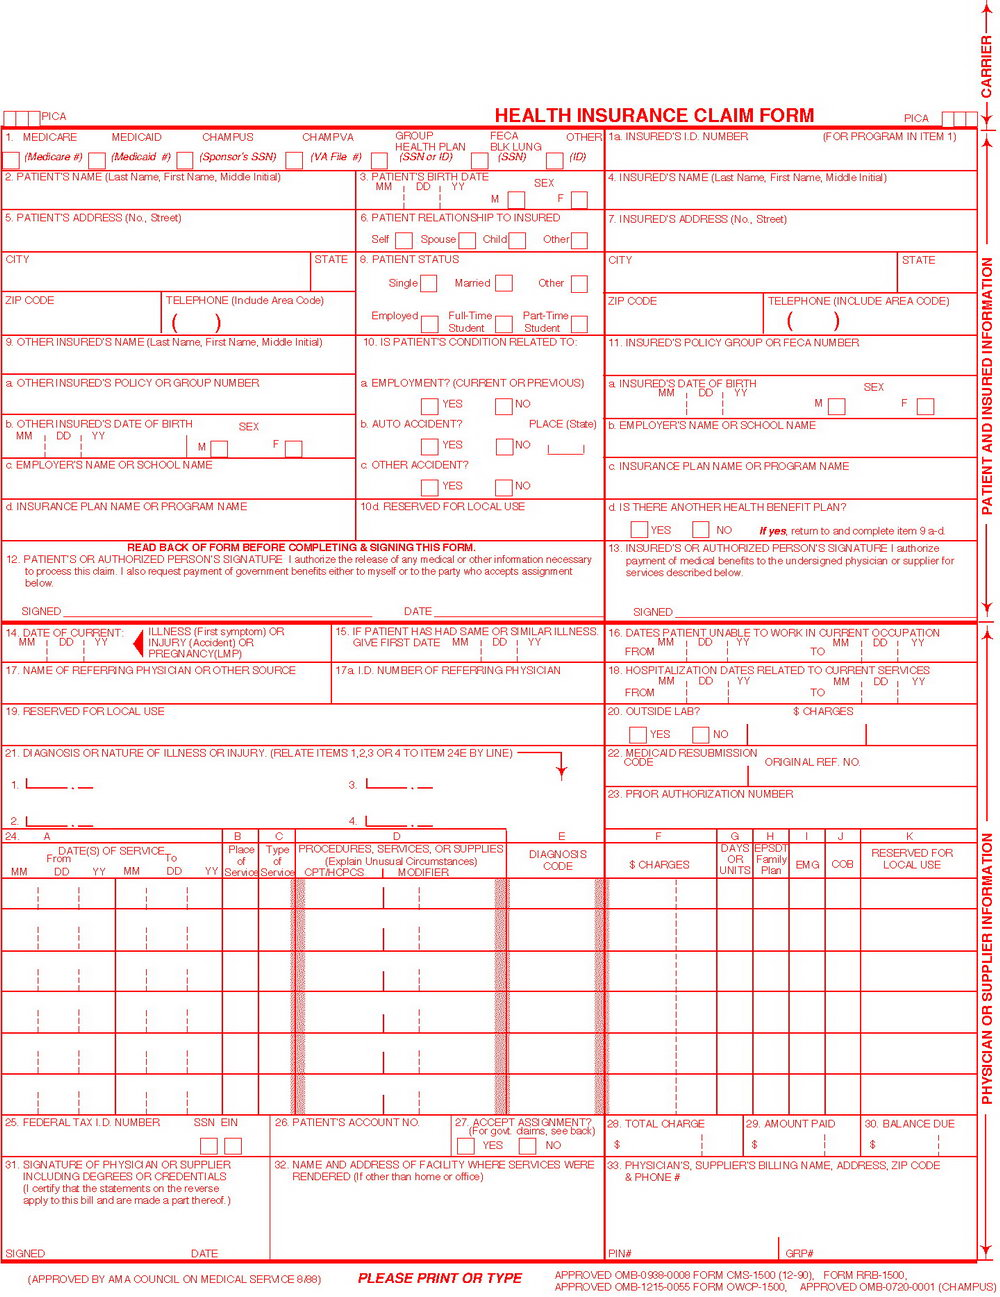 Hcfa 1500 Claim Form Instructions